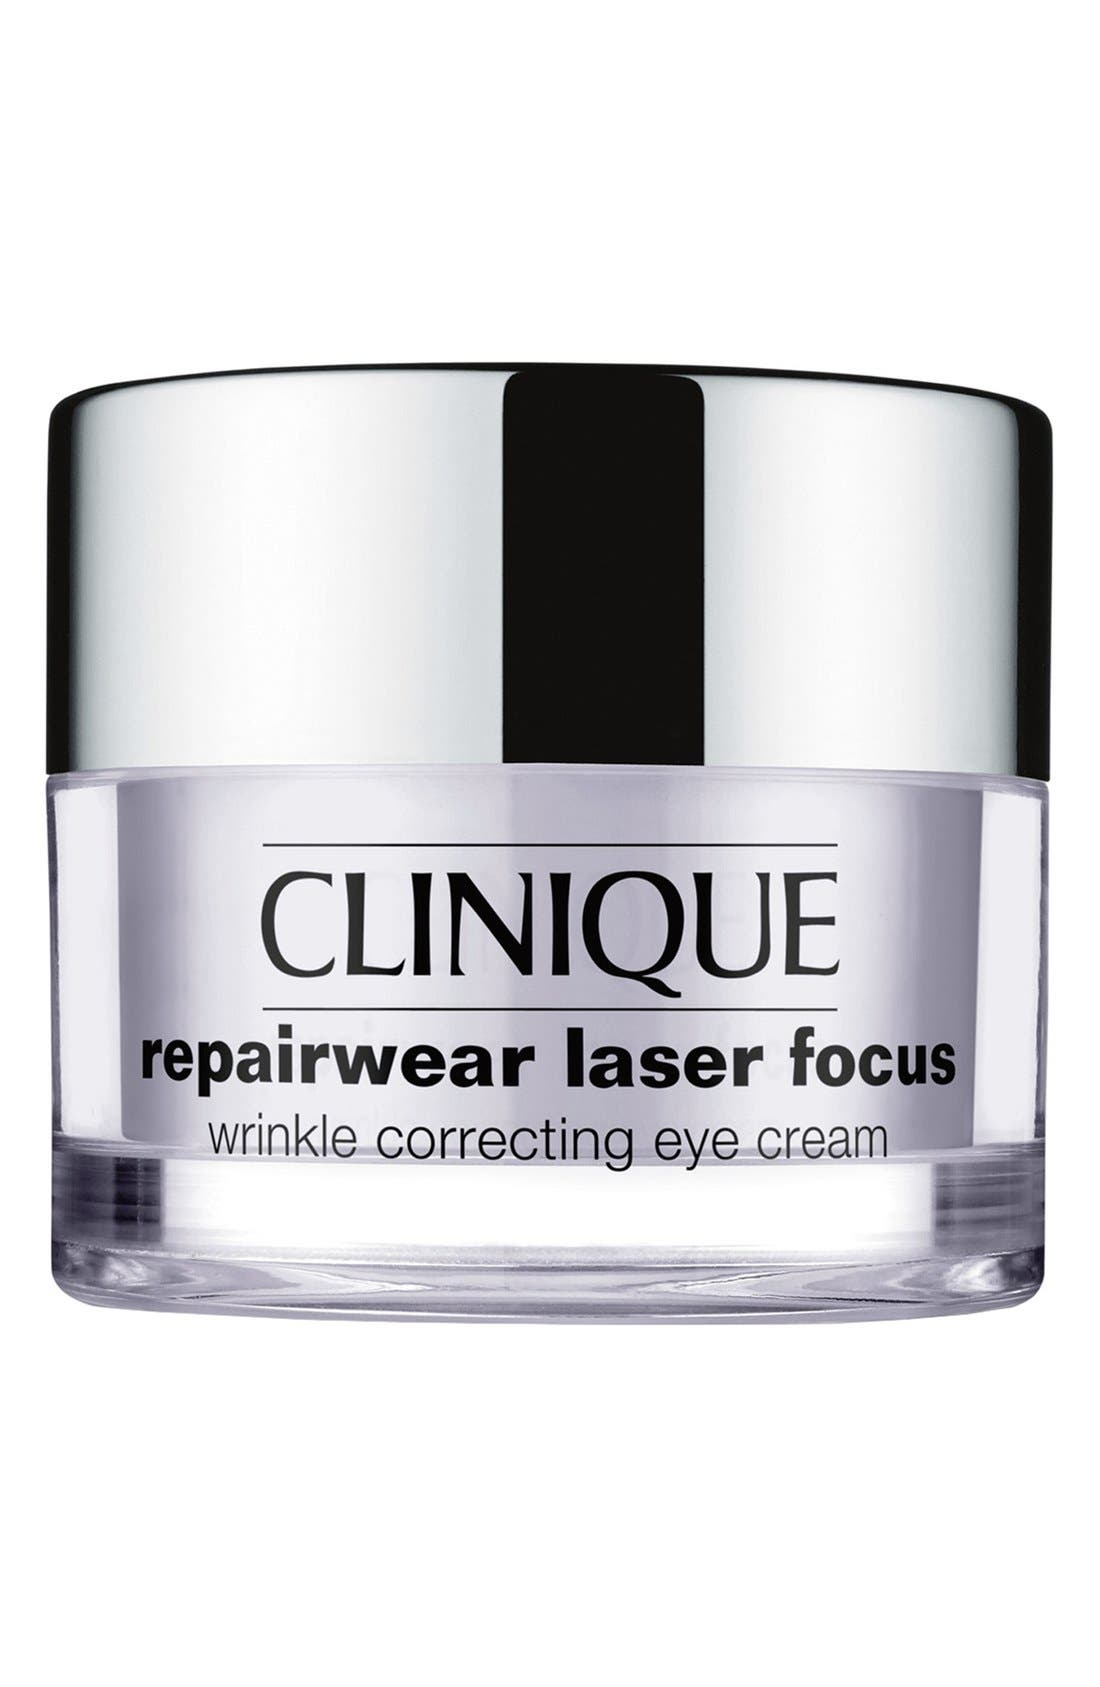 Clinique 'Repairwear Laser Focus' Wrinkle Correcting Eye Cream